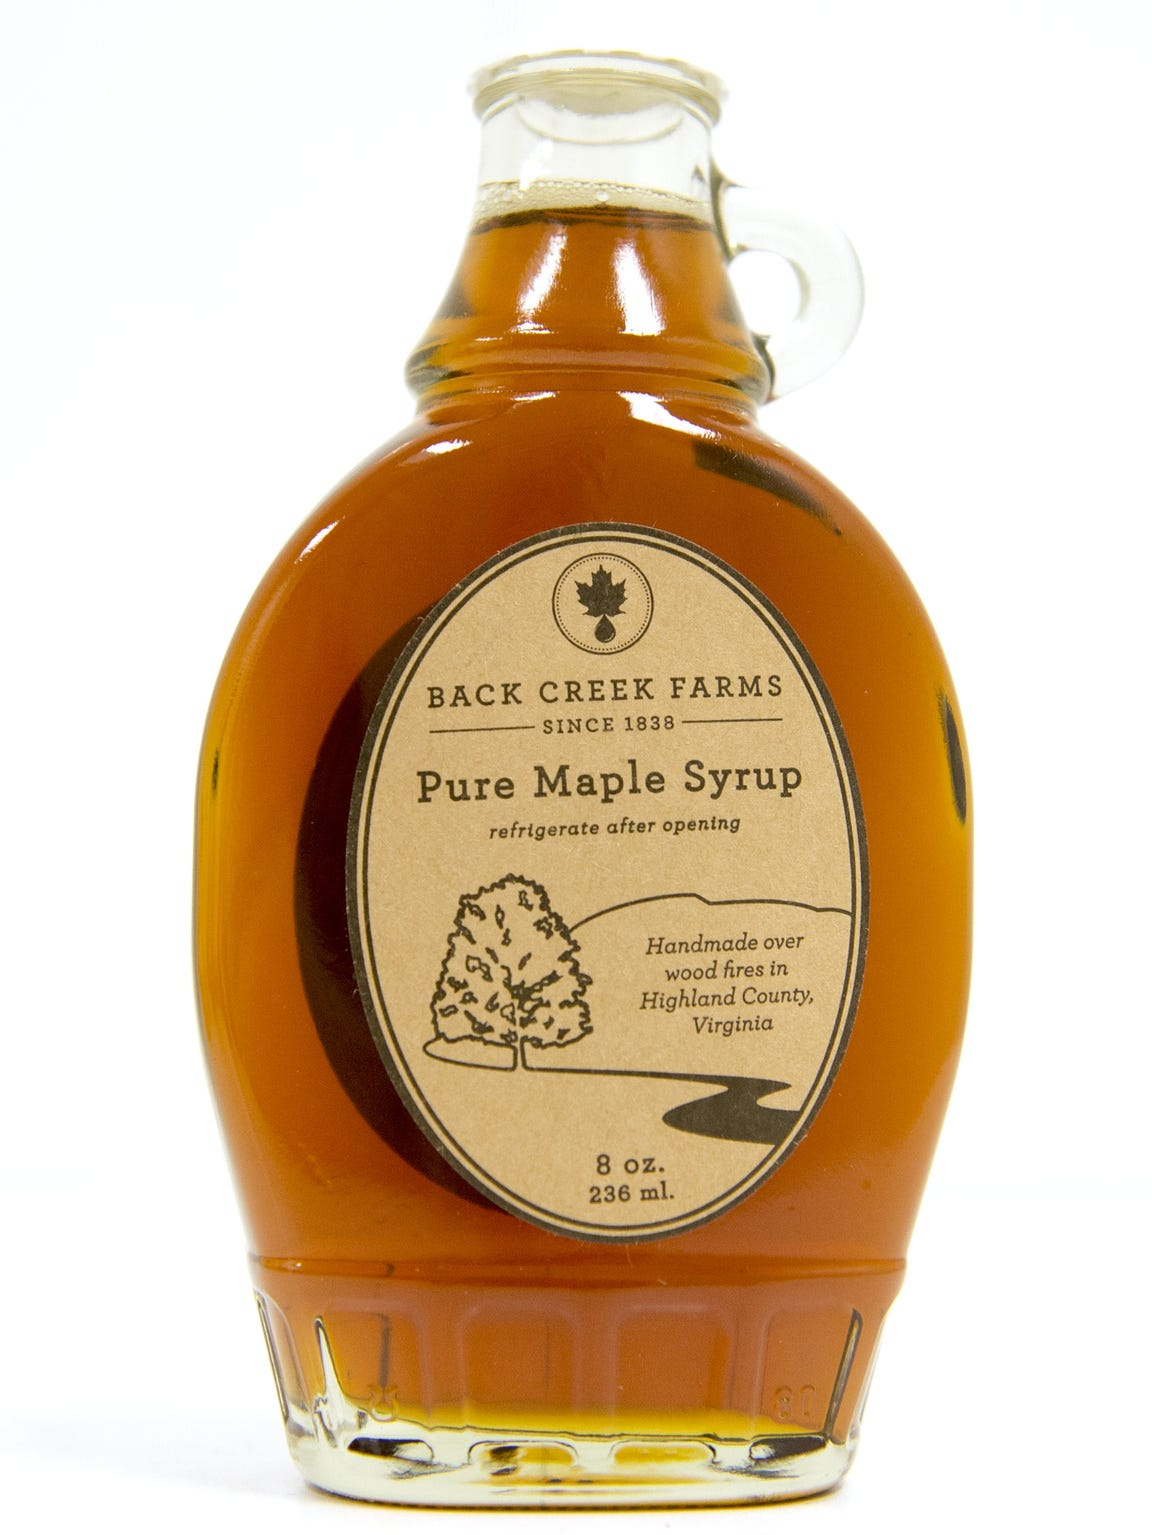 Back Creek Farms maple syrup from Highland County